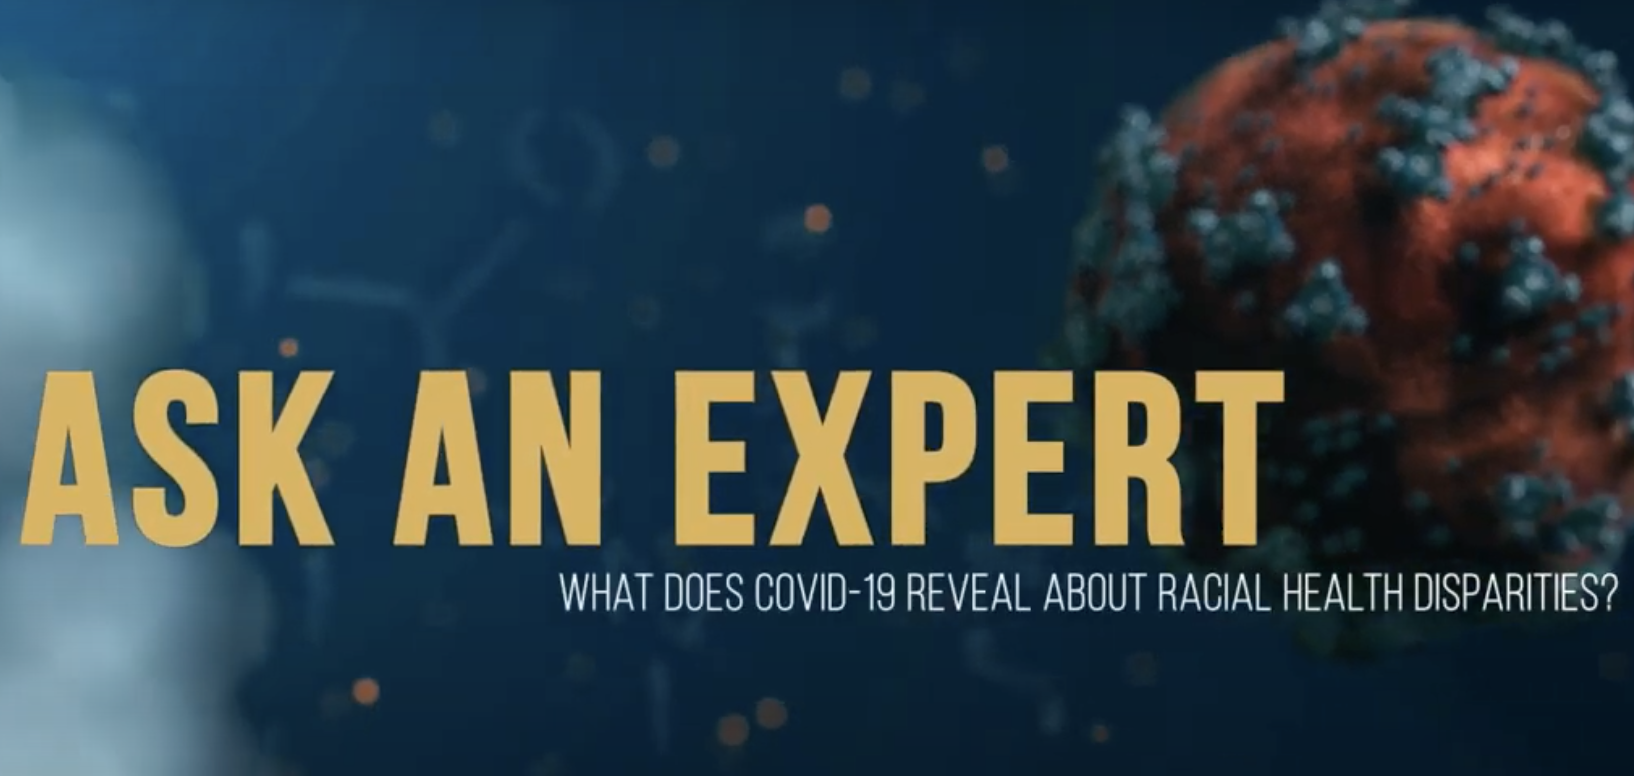 Ask an Expert. What does COVID-19 reveal about health disparities